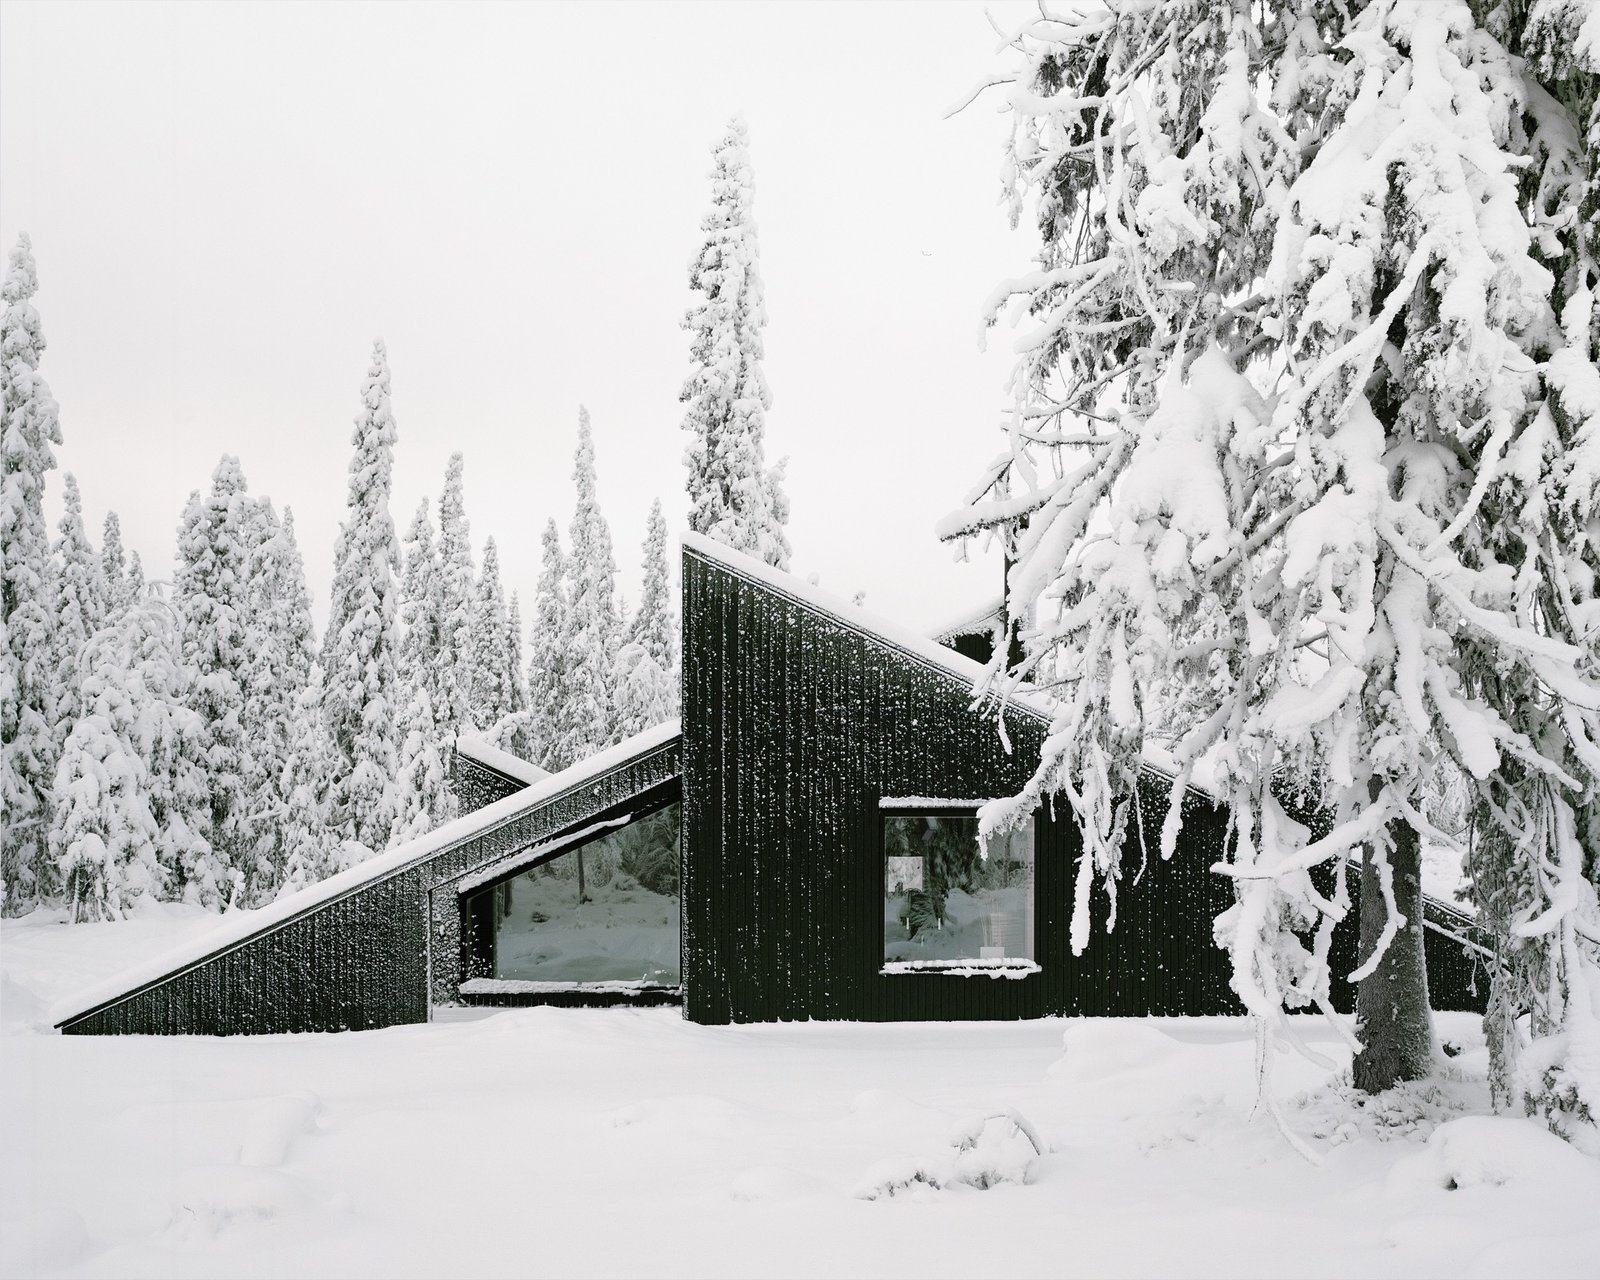 Architect Håkon Matre Aasarød, partner at Oslo-based studio Vardehaugen Architects, led the design of Cabin Vindheim, situated deep in the forest in the alpine landscape near Lillehammer, Norway . The cabin's concept was simple: To create a cabin that is small and sparse yet spatially rich. The 55-quare-meter (592-square-foot) cabin, commissioned by a private client and completed in 2016, comprises a large living room, bedroom, ski room, and small annex with a utility room. It functions off the water and electricity grids. The Vindheim Cabin: Snowbound in Norway - Photo 1 of 18